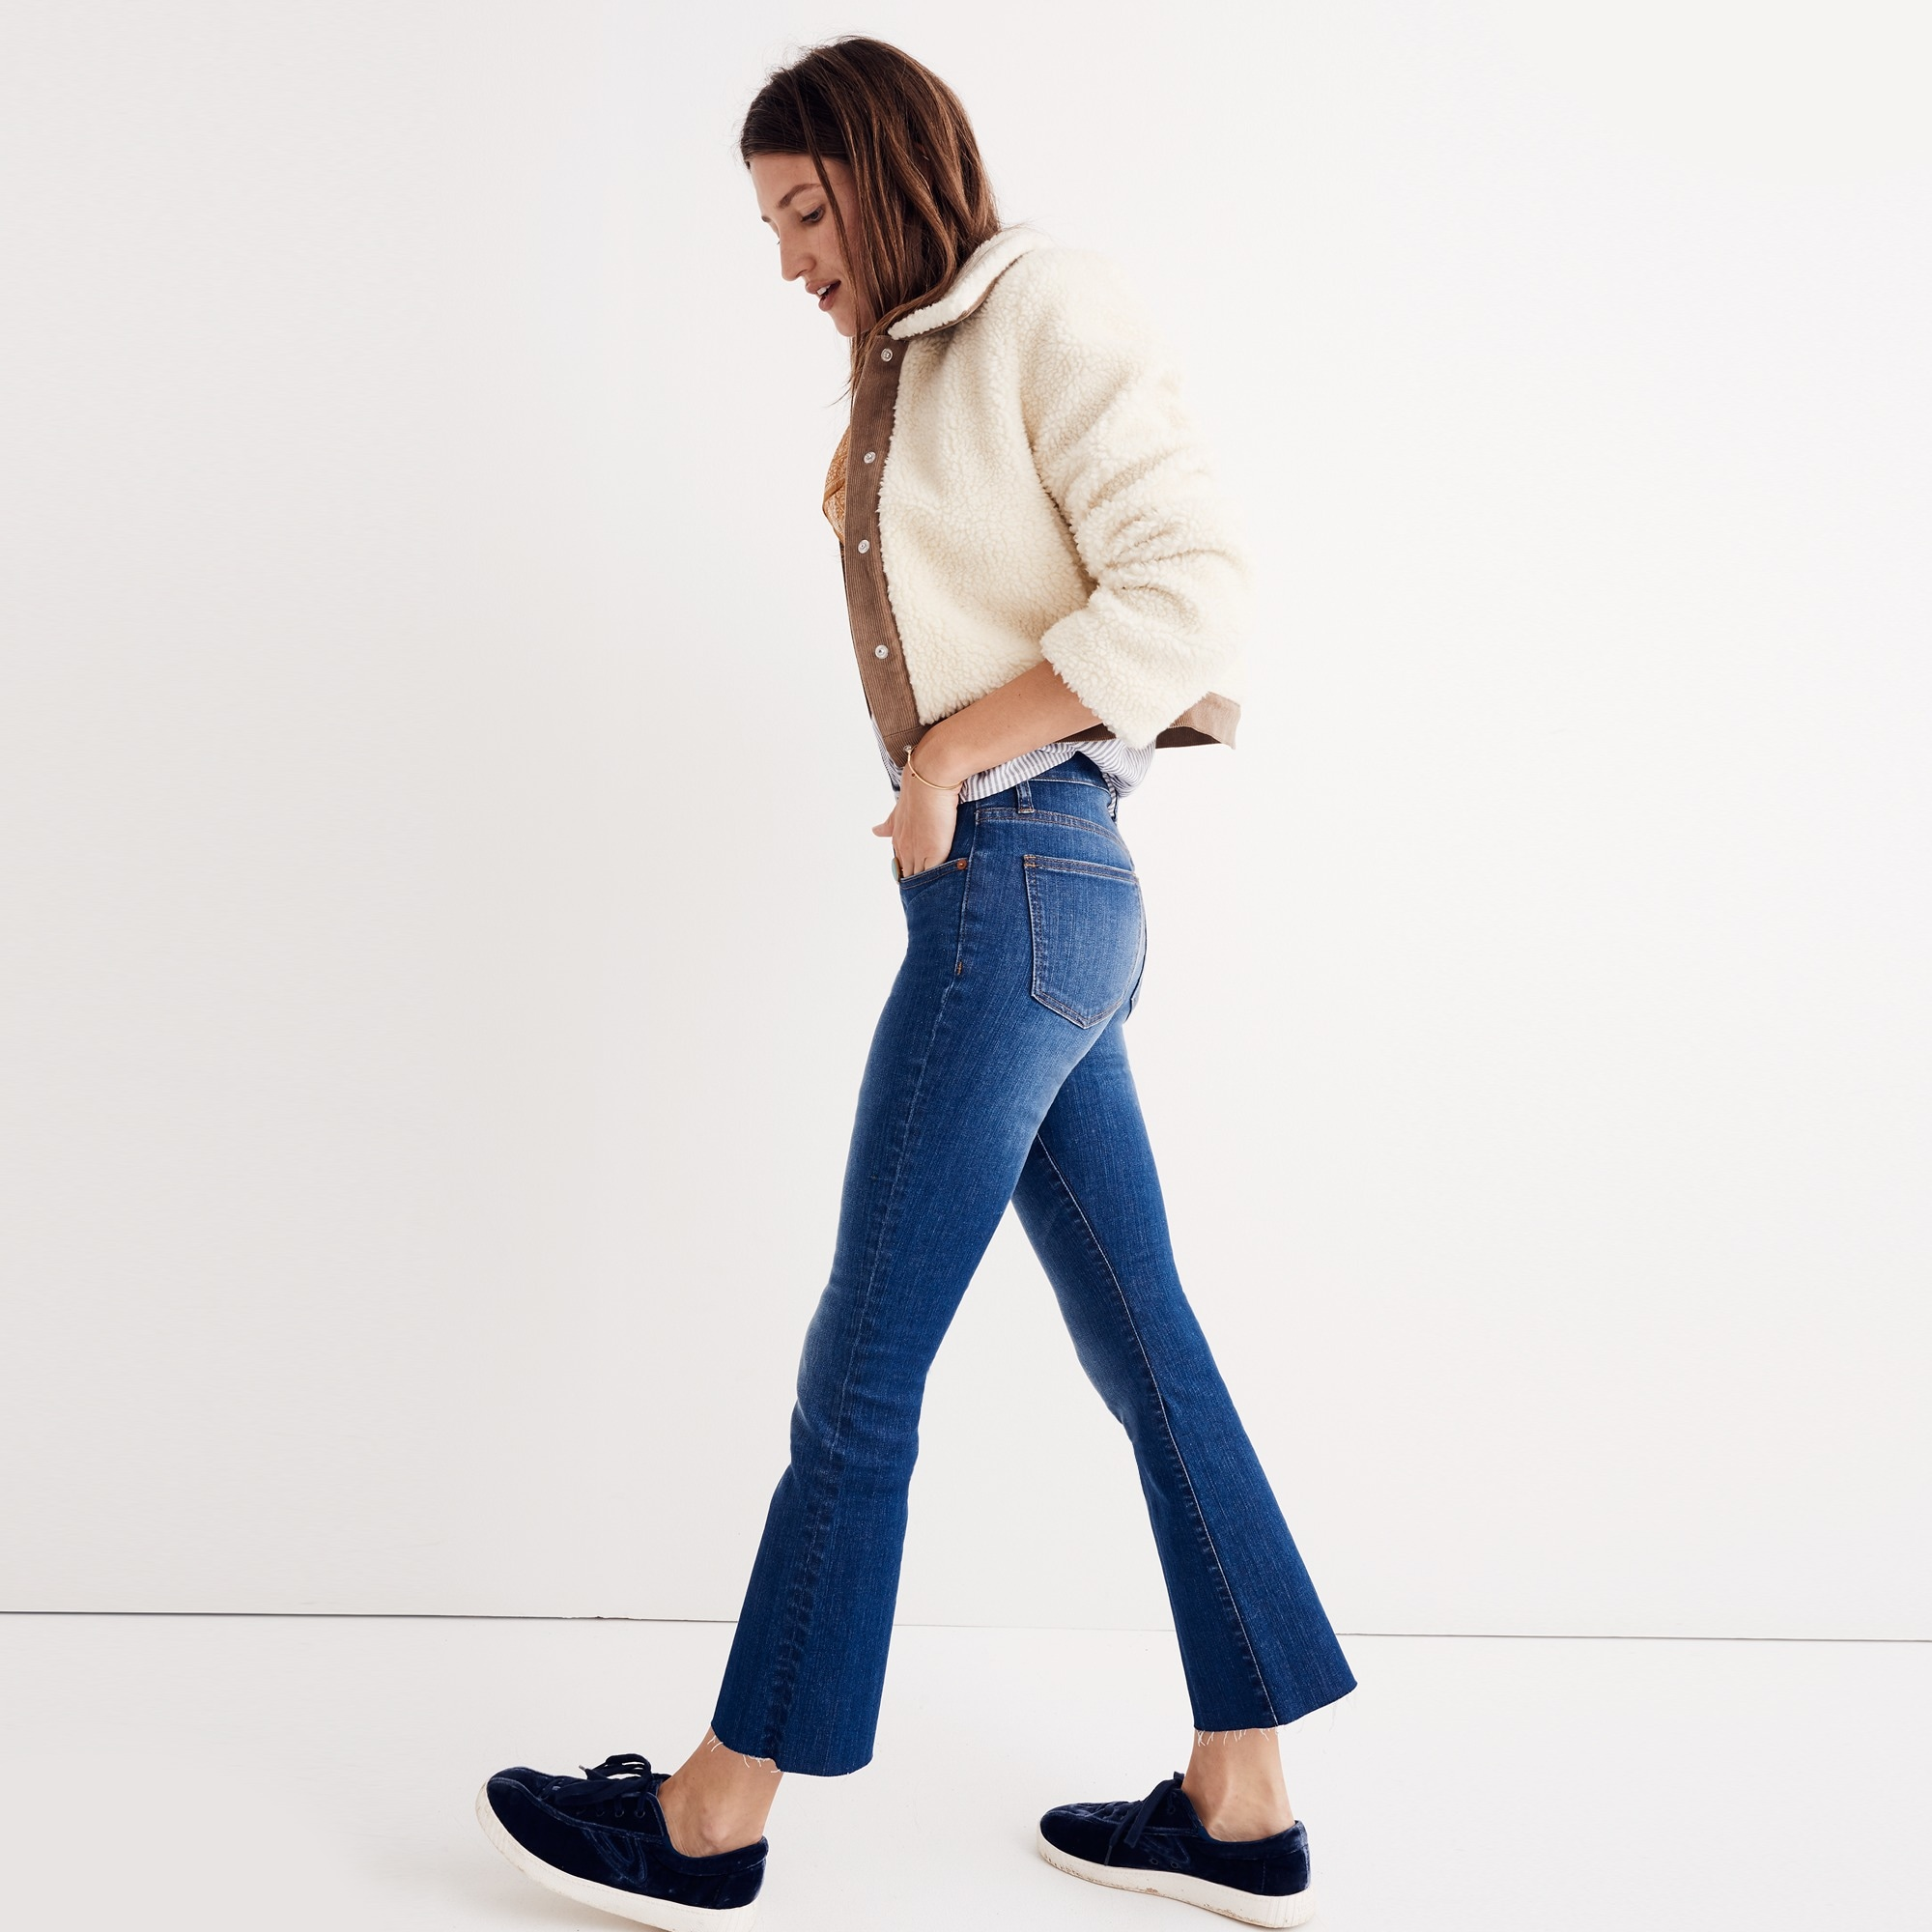 Image 1 for Madewell Cali demi-boot jean: raw-hem edition